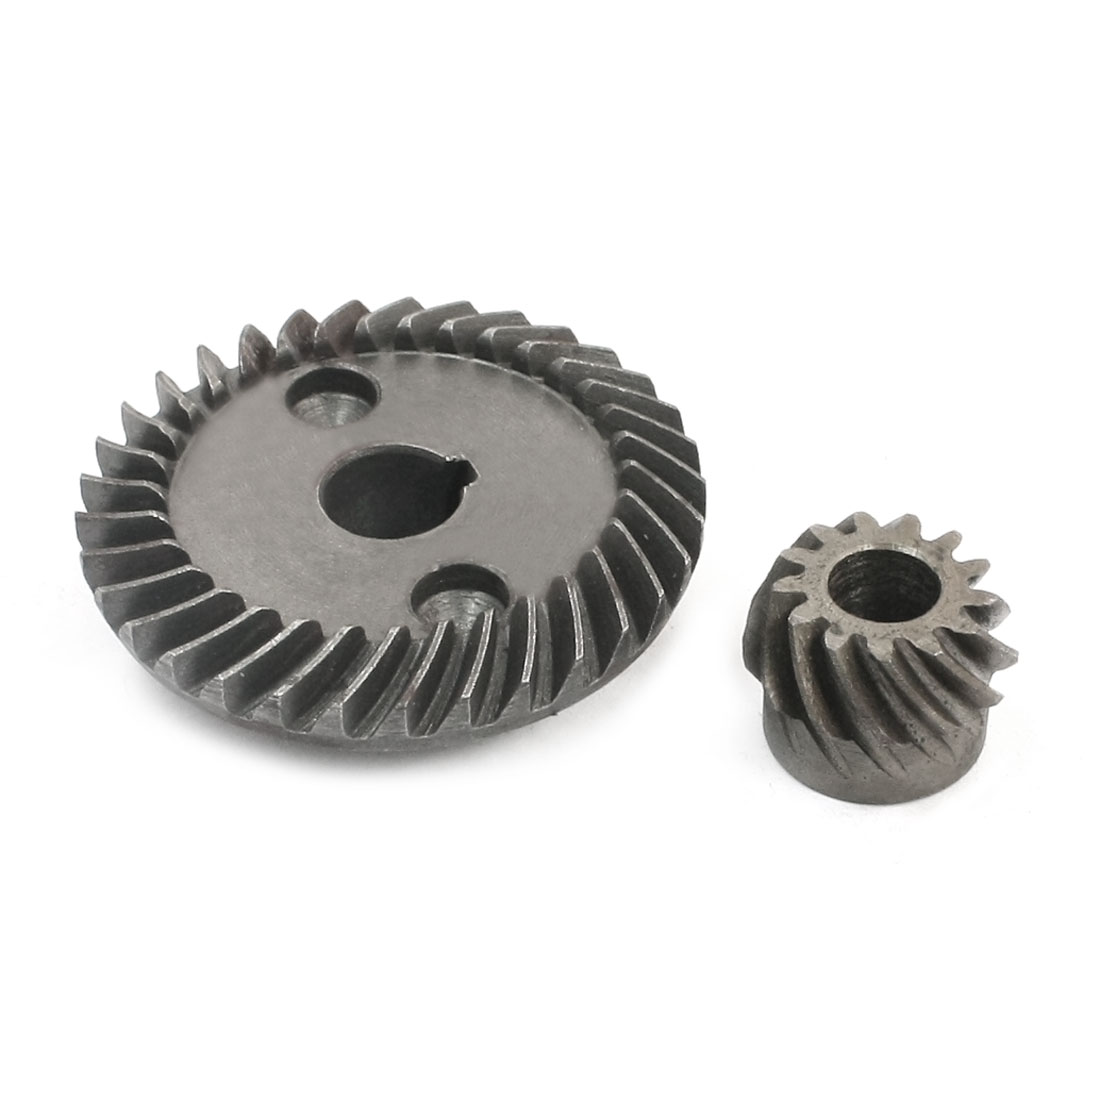 Replacement Metal Spiral Bevel Gear Set for FF03-100 Polishing Machine